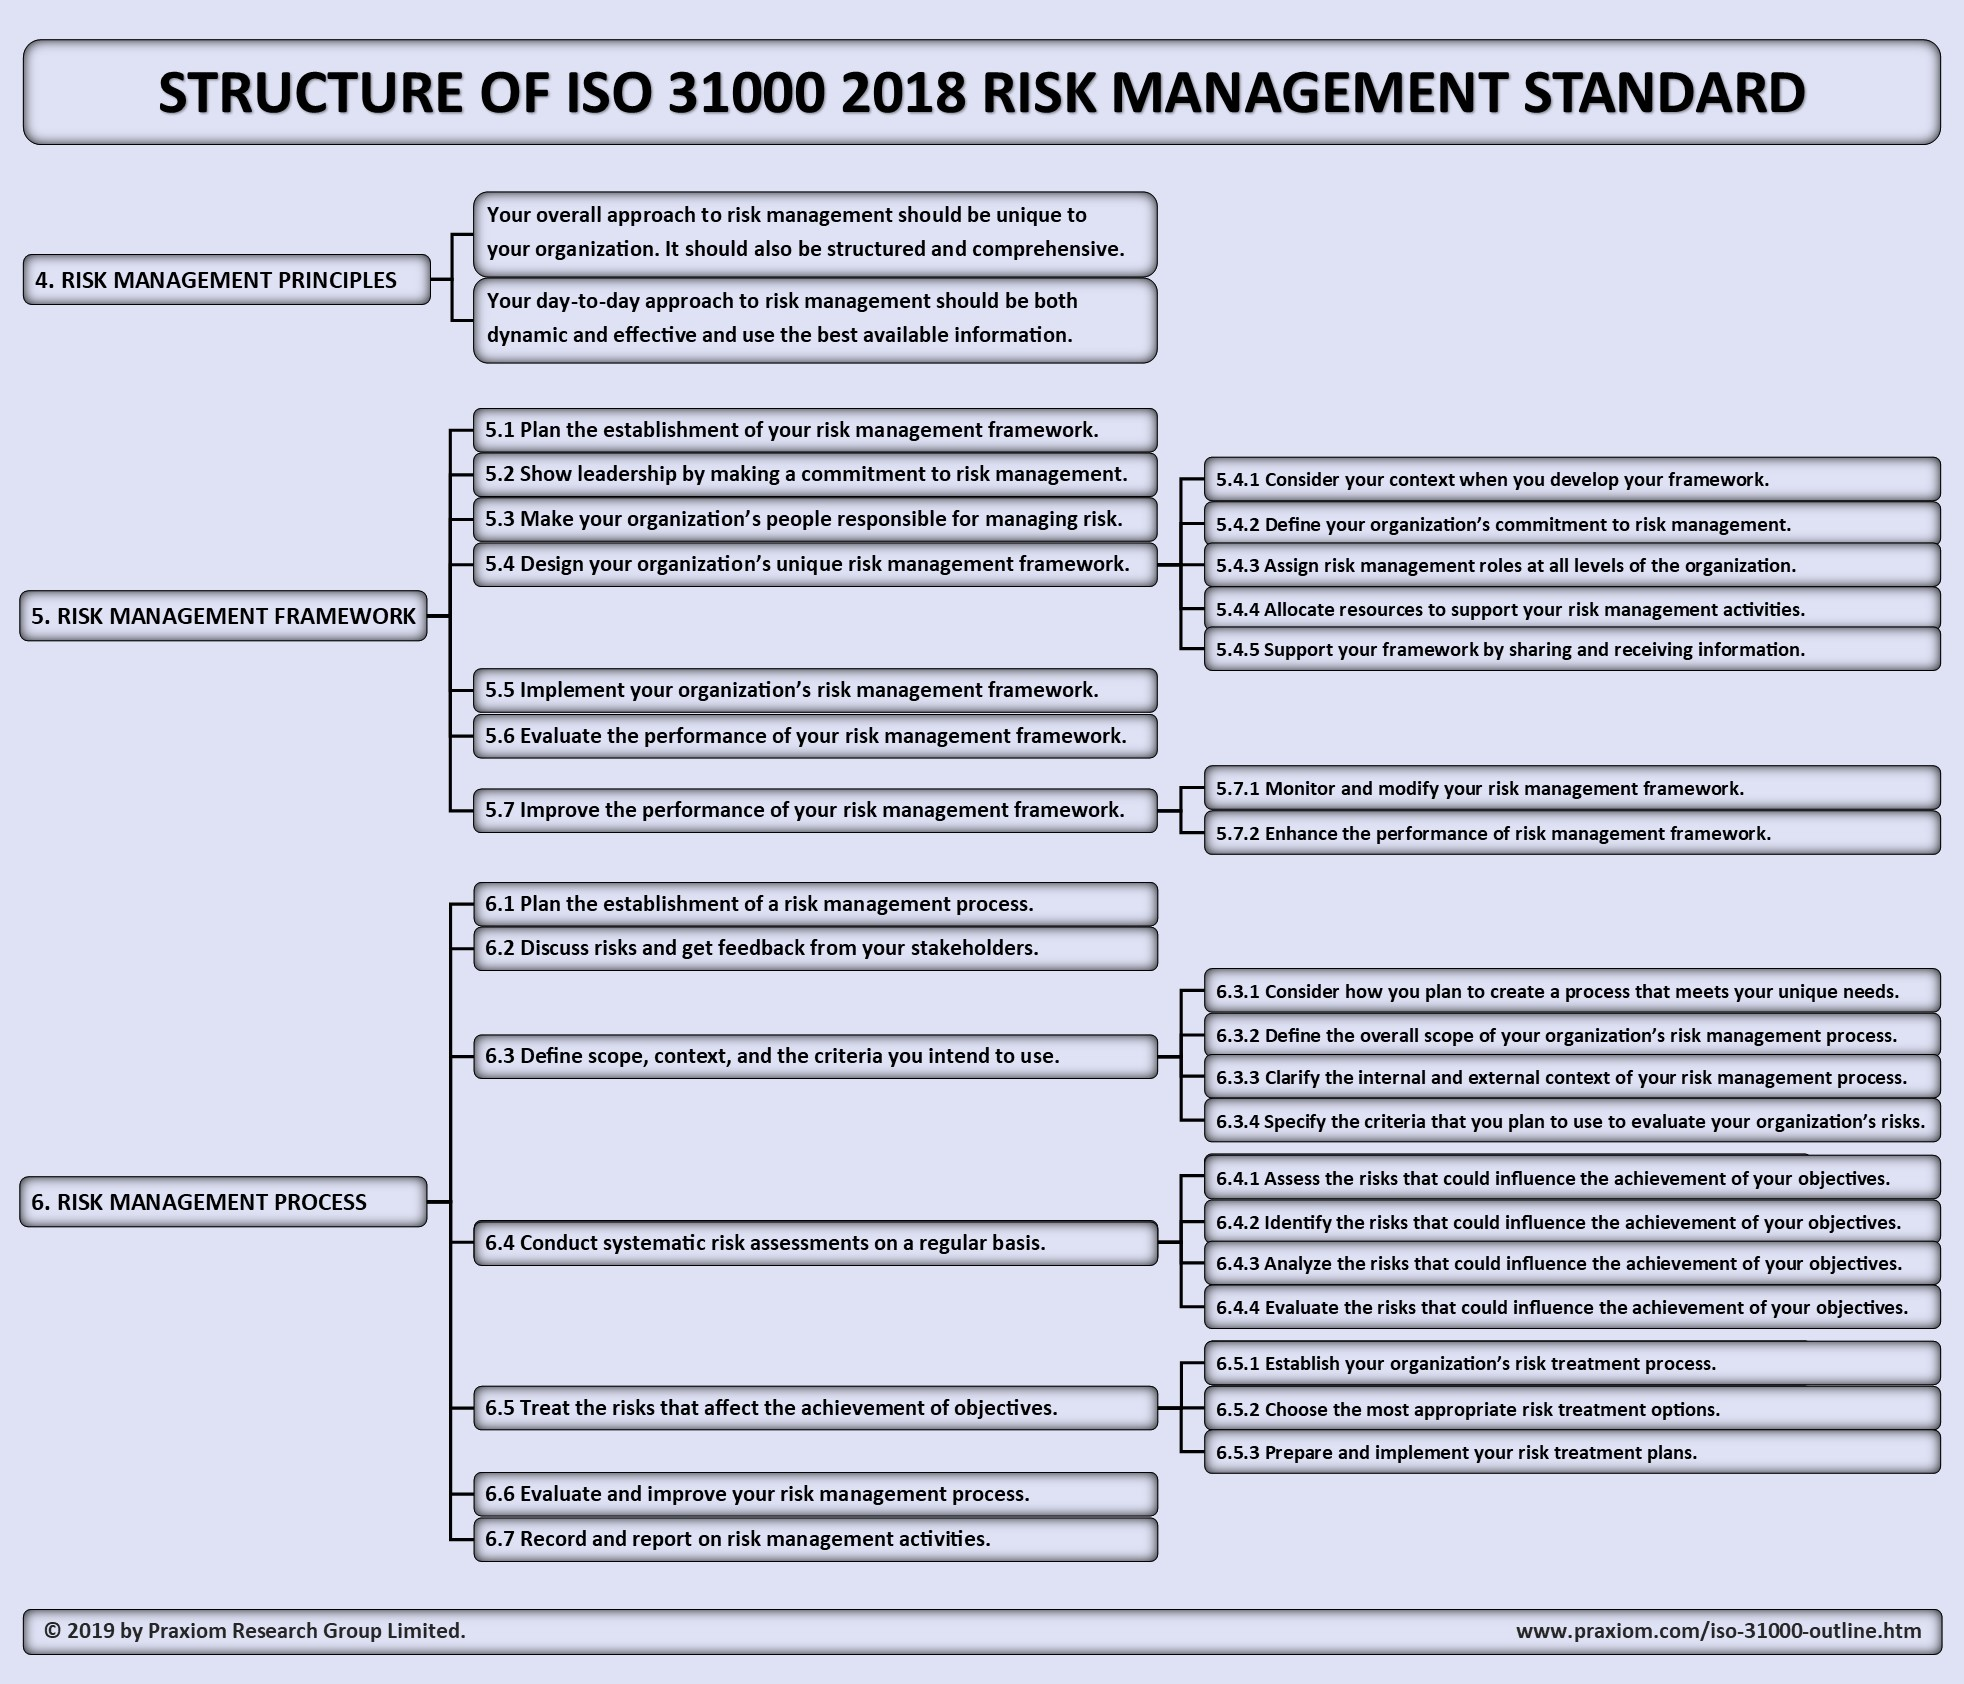 ISO 31000 Structure